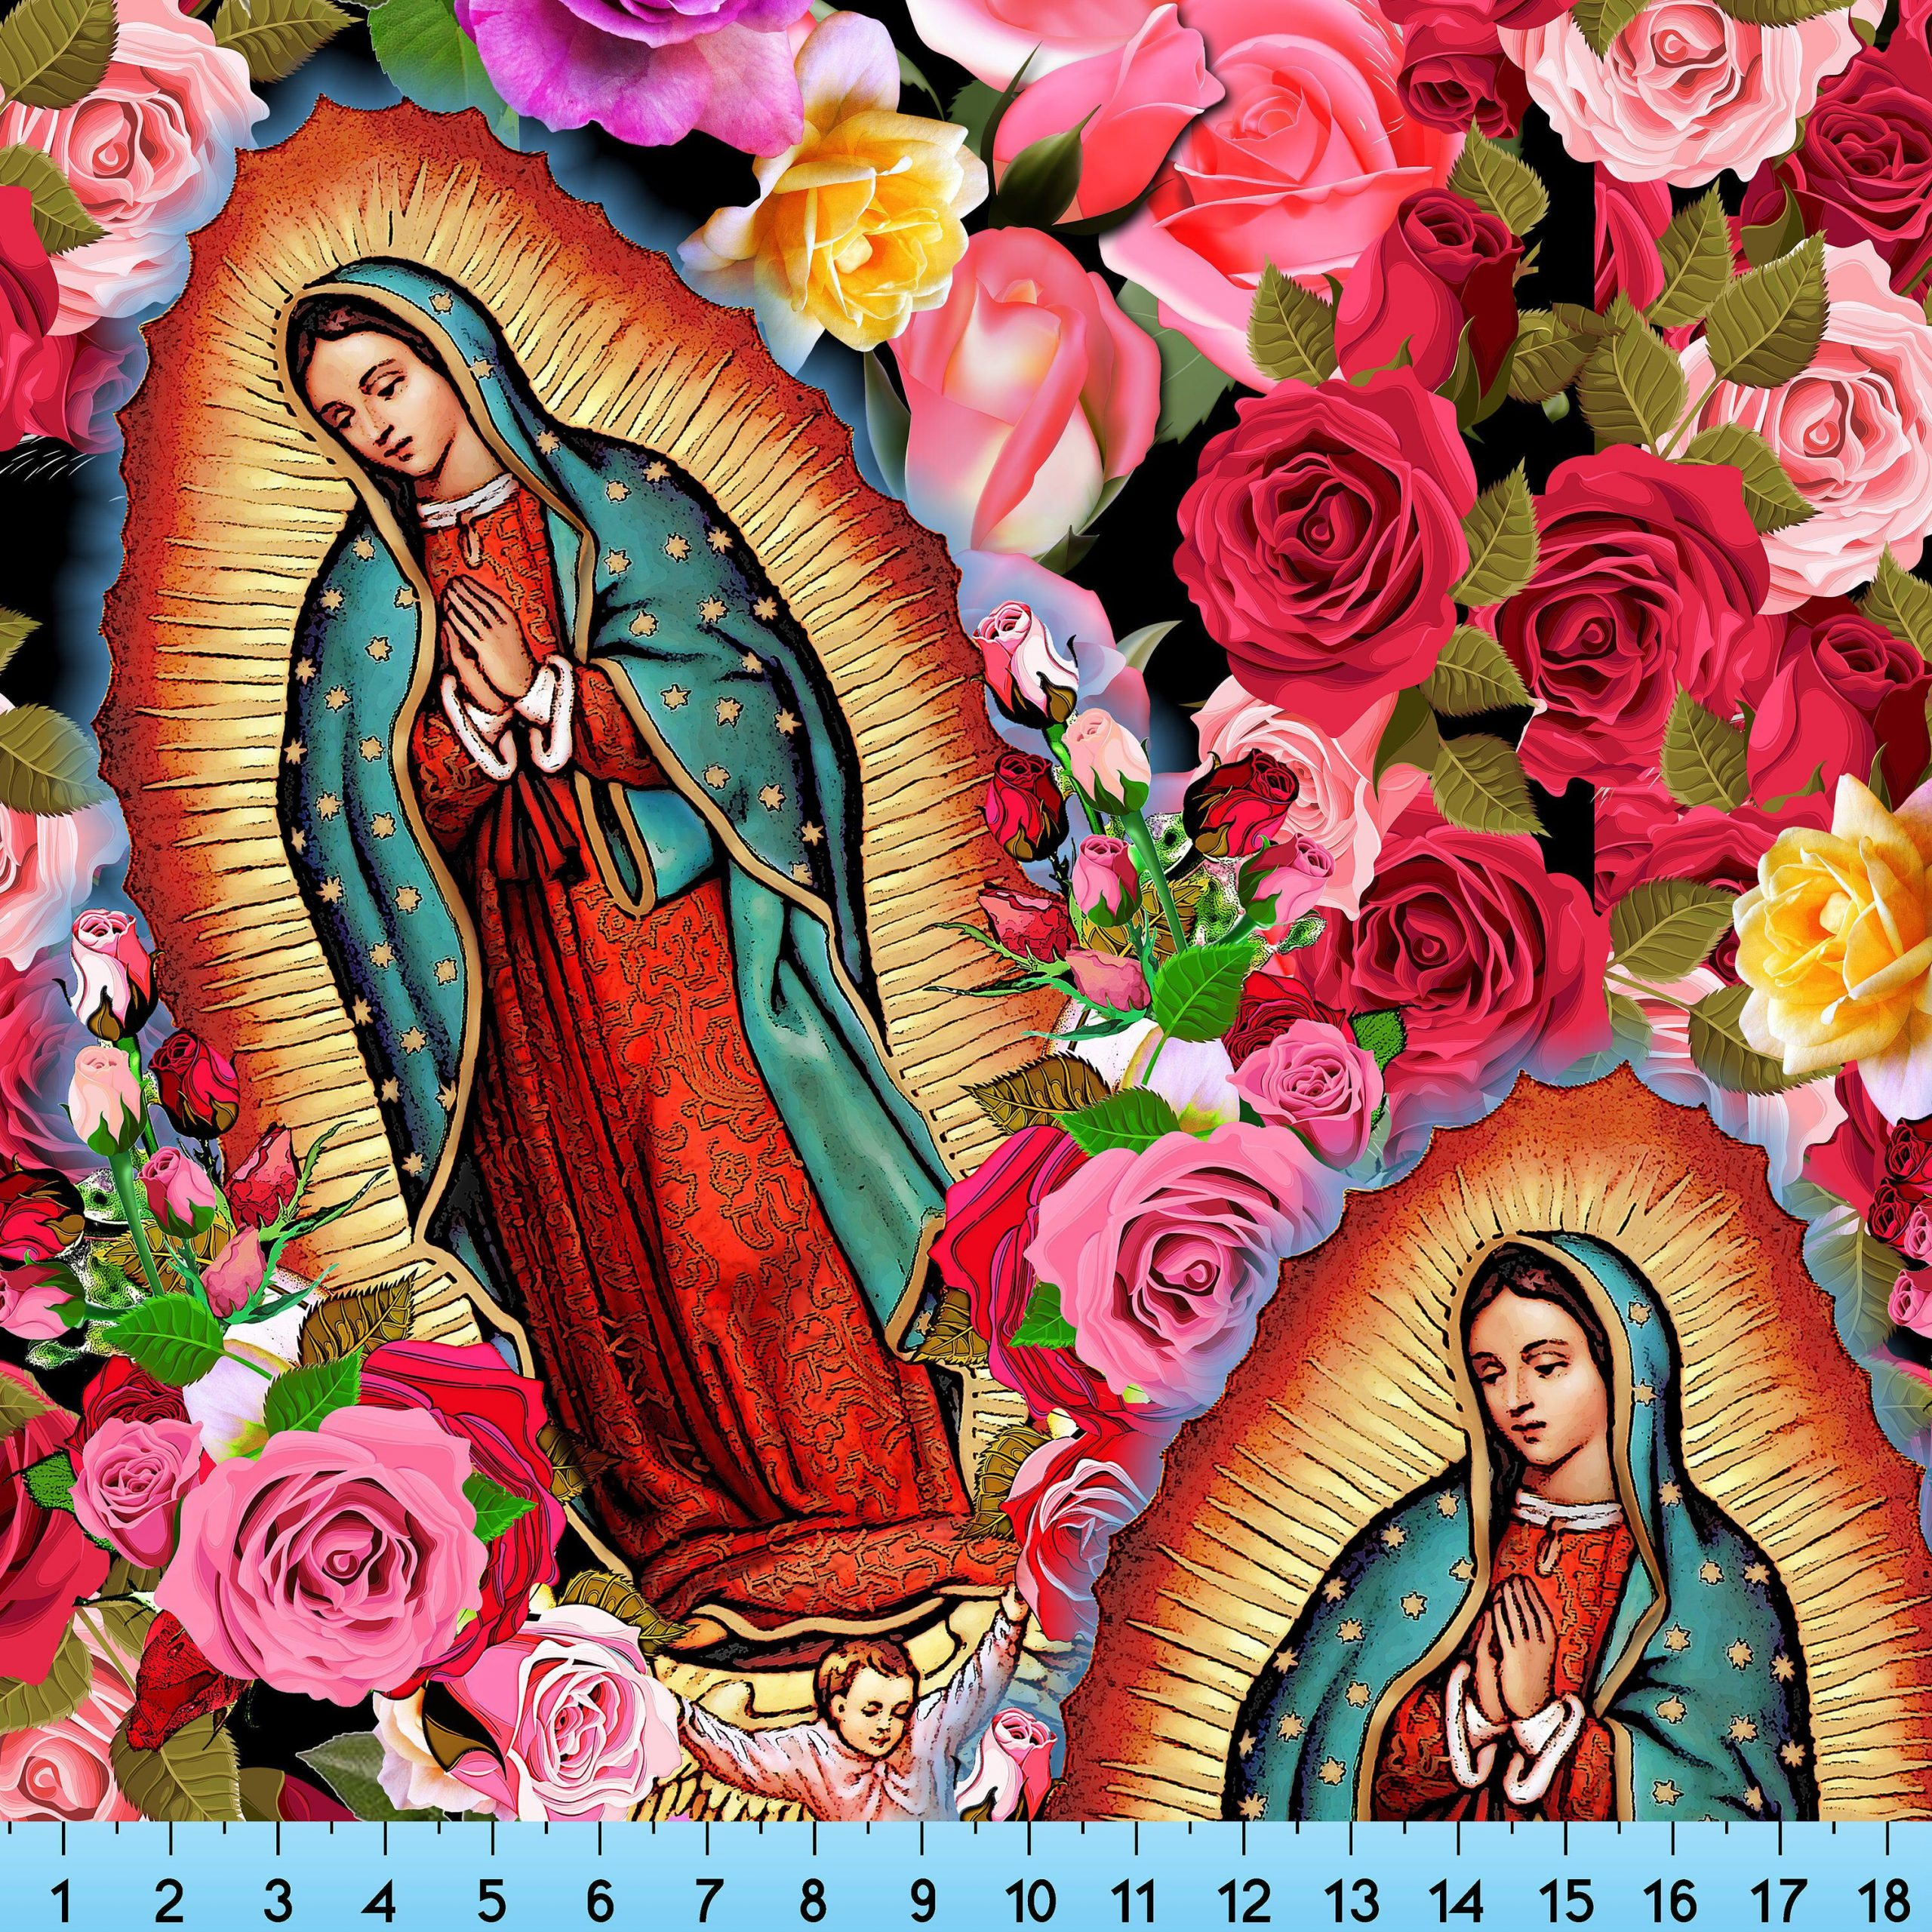 Pin On Our Lady Of Guadalupe, Virgin Mary Intended For 2017 Blended Fabric Our Lady Of Guadalupe Wall Hangings (View 6 of 20)